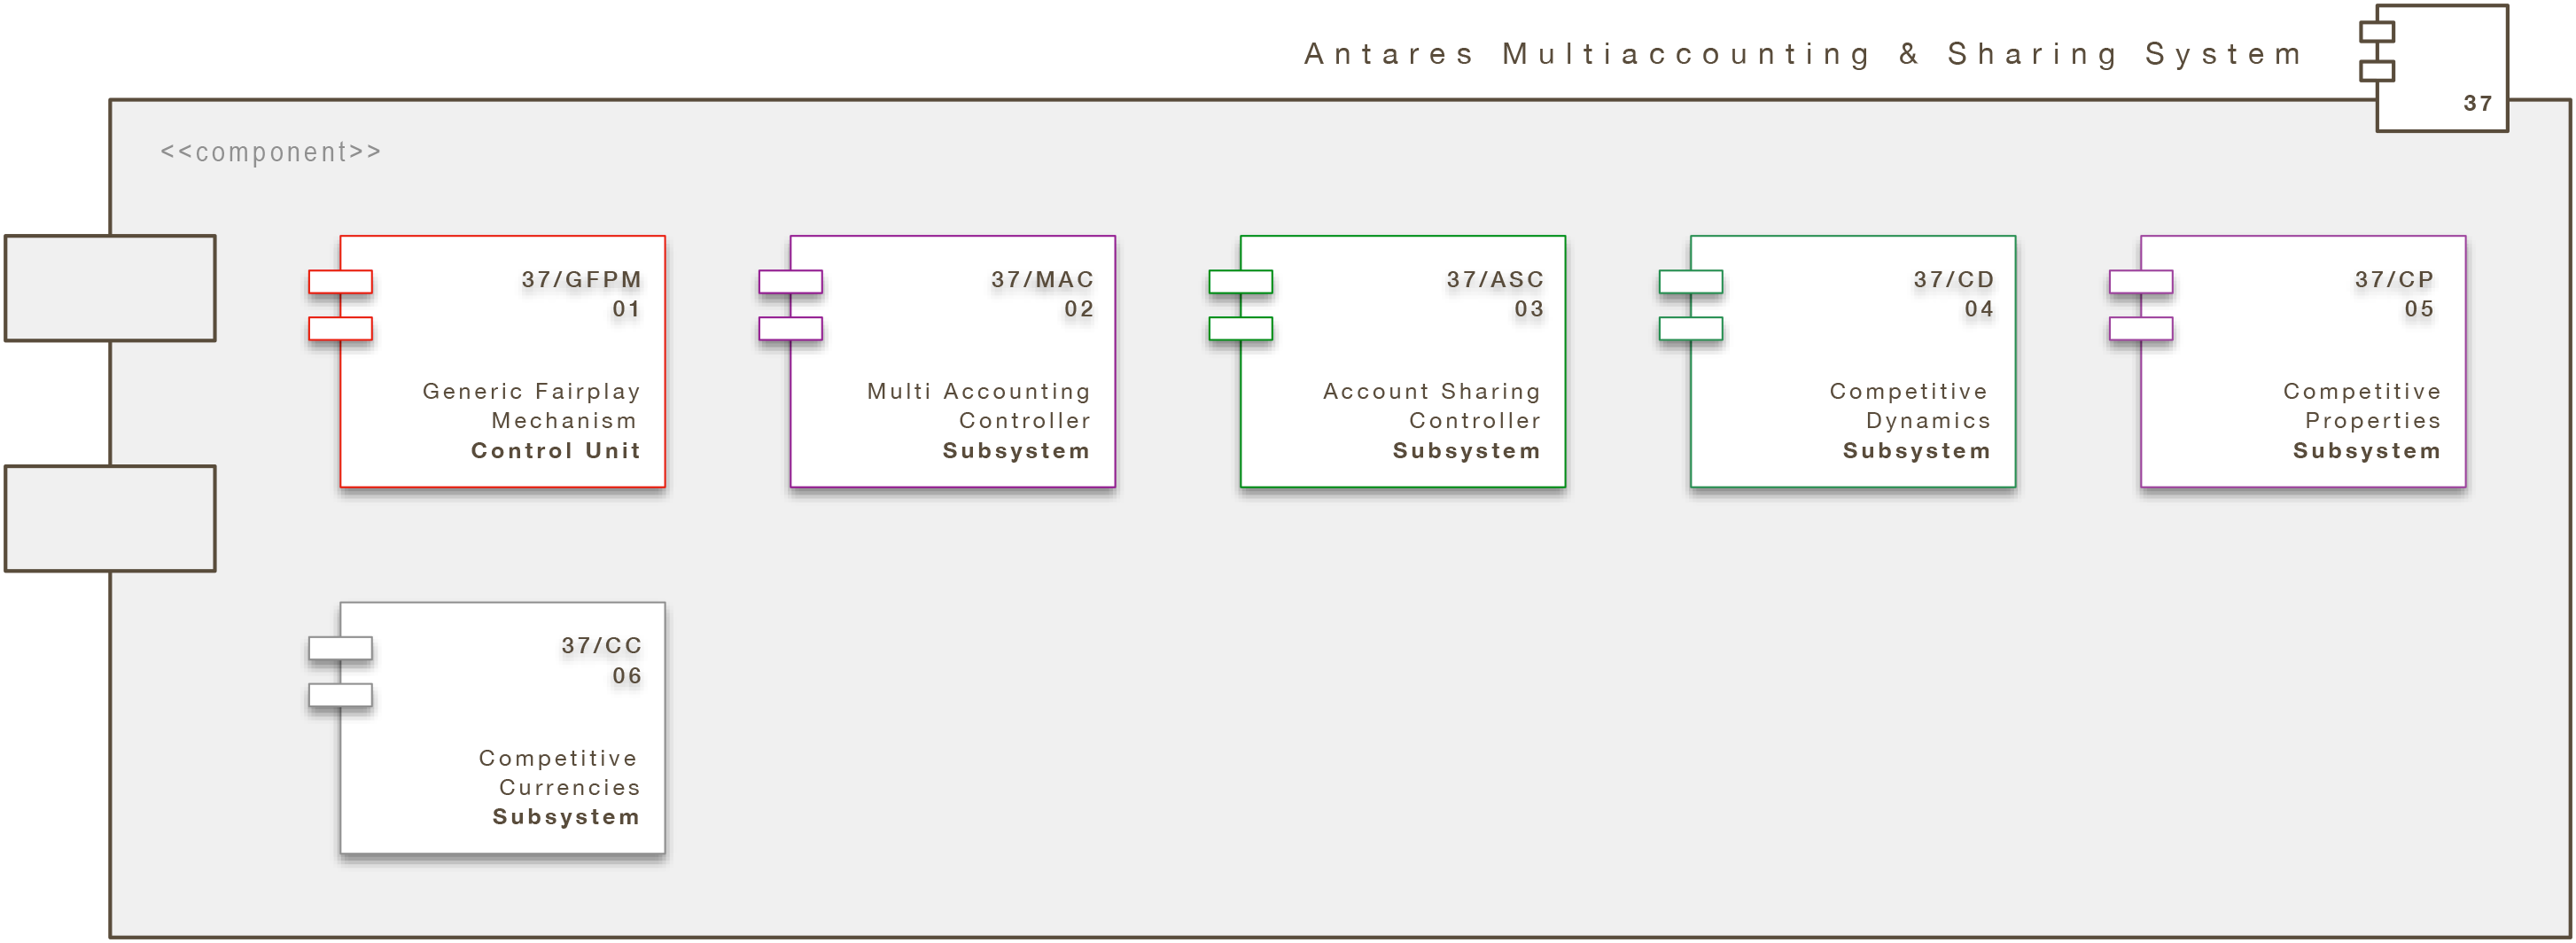 Core Engine Modul: Antares Multiaccounting & Sharing System